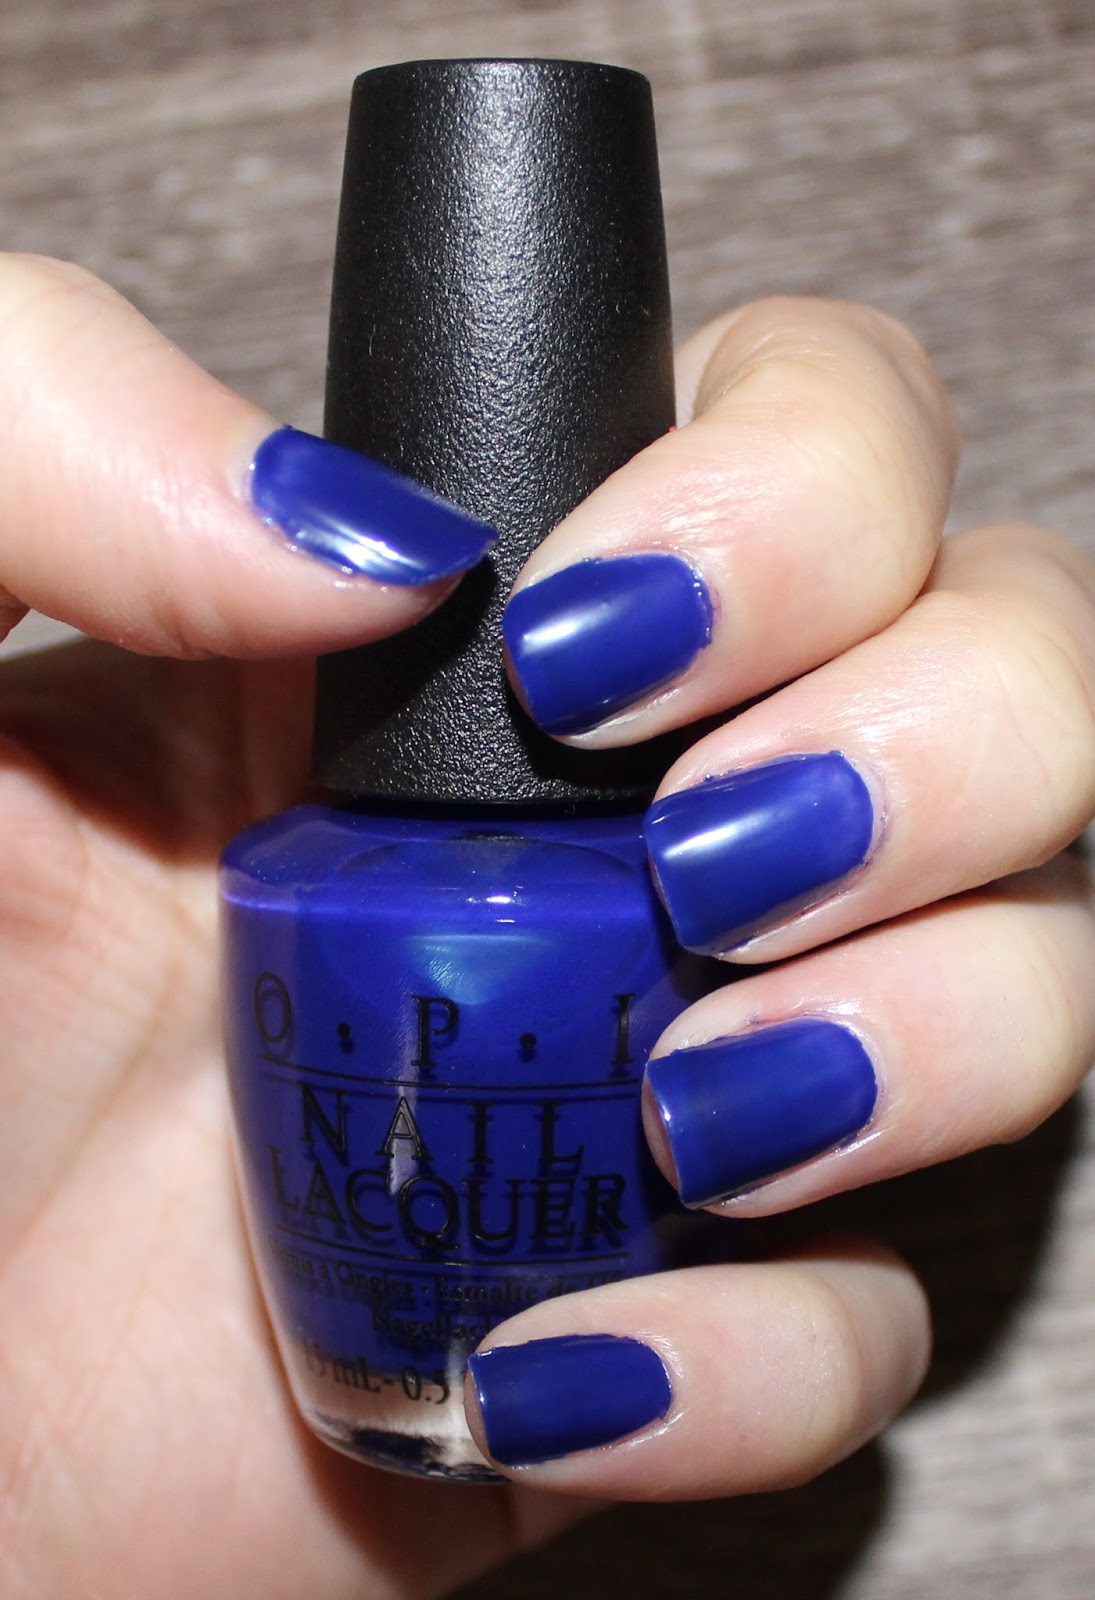 Beyond Blush: OPI My Car Has Navy-gation and Pinks & Needles